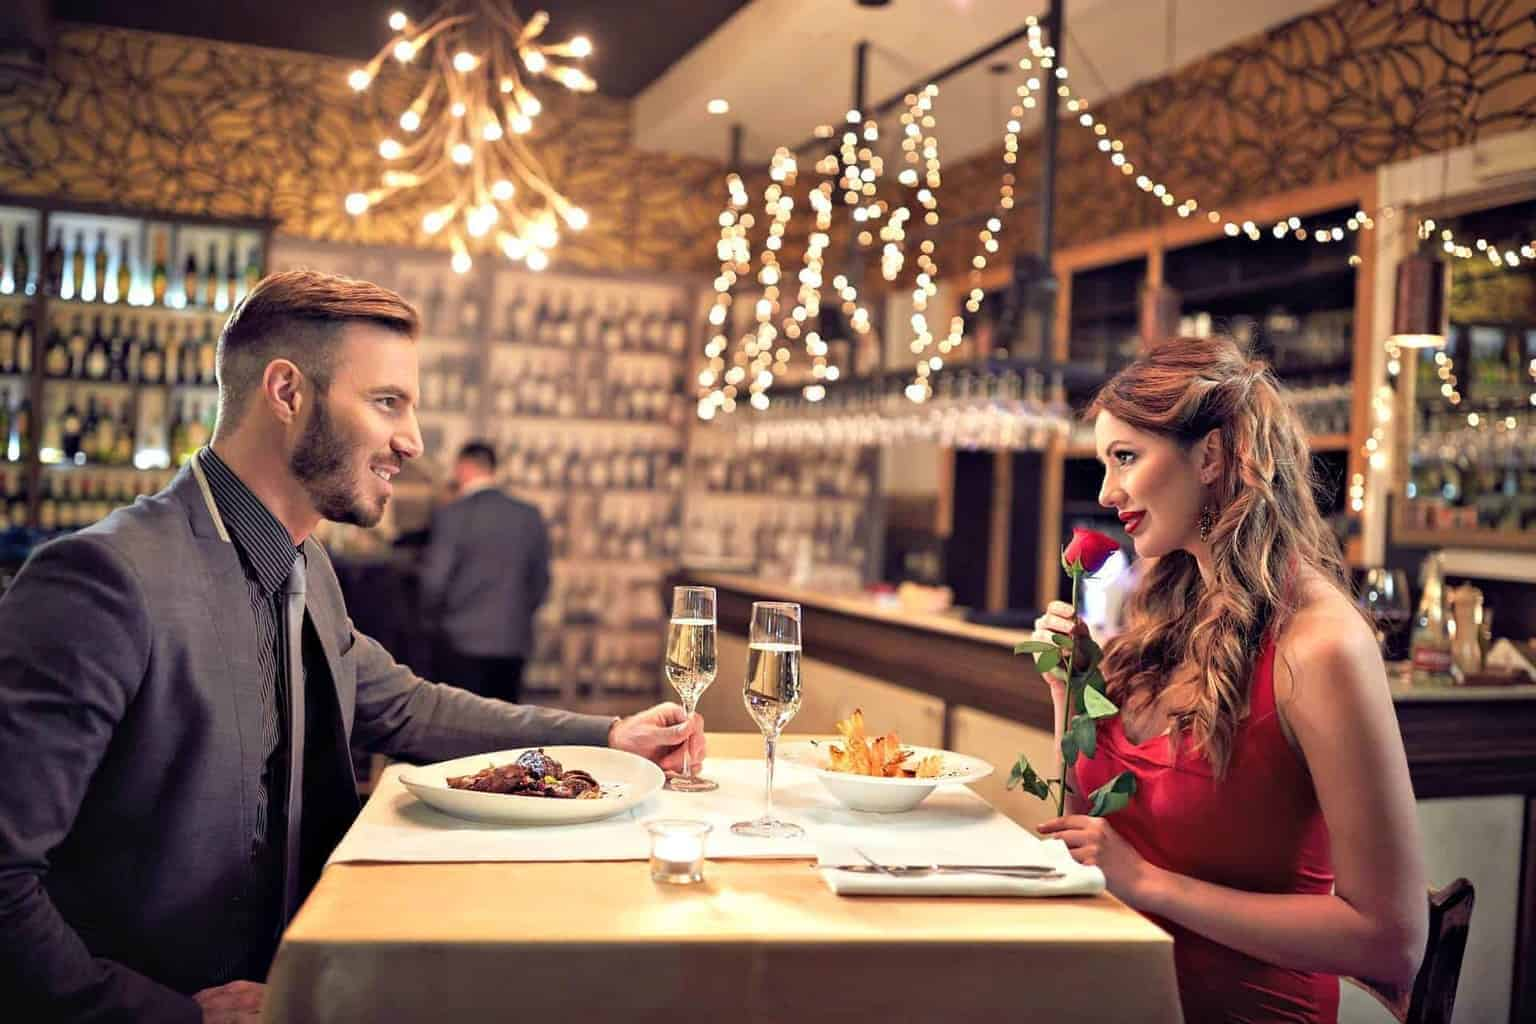 Spice Up Date Night With This Beauty Advice